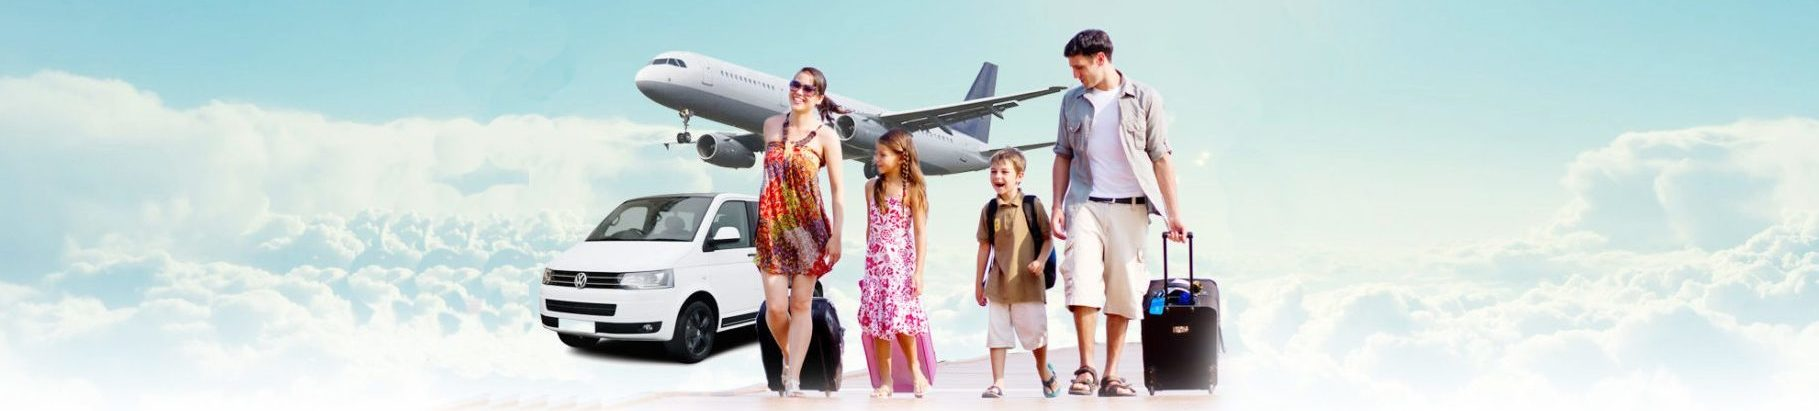 antalya aeroport transfer side alanya belek